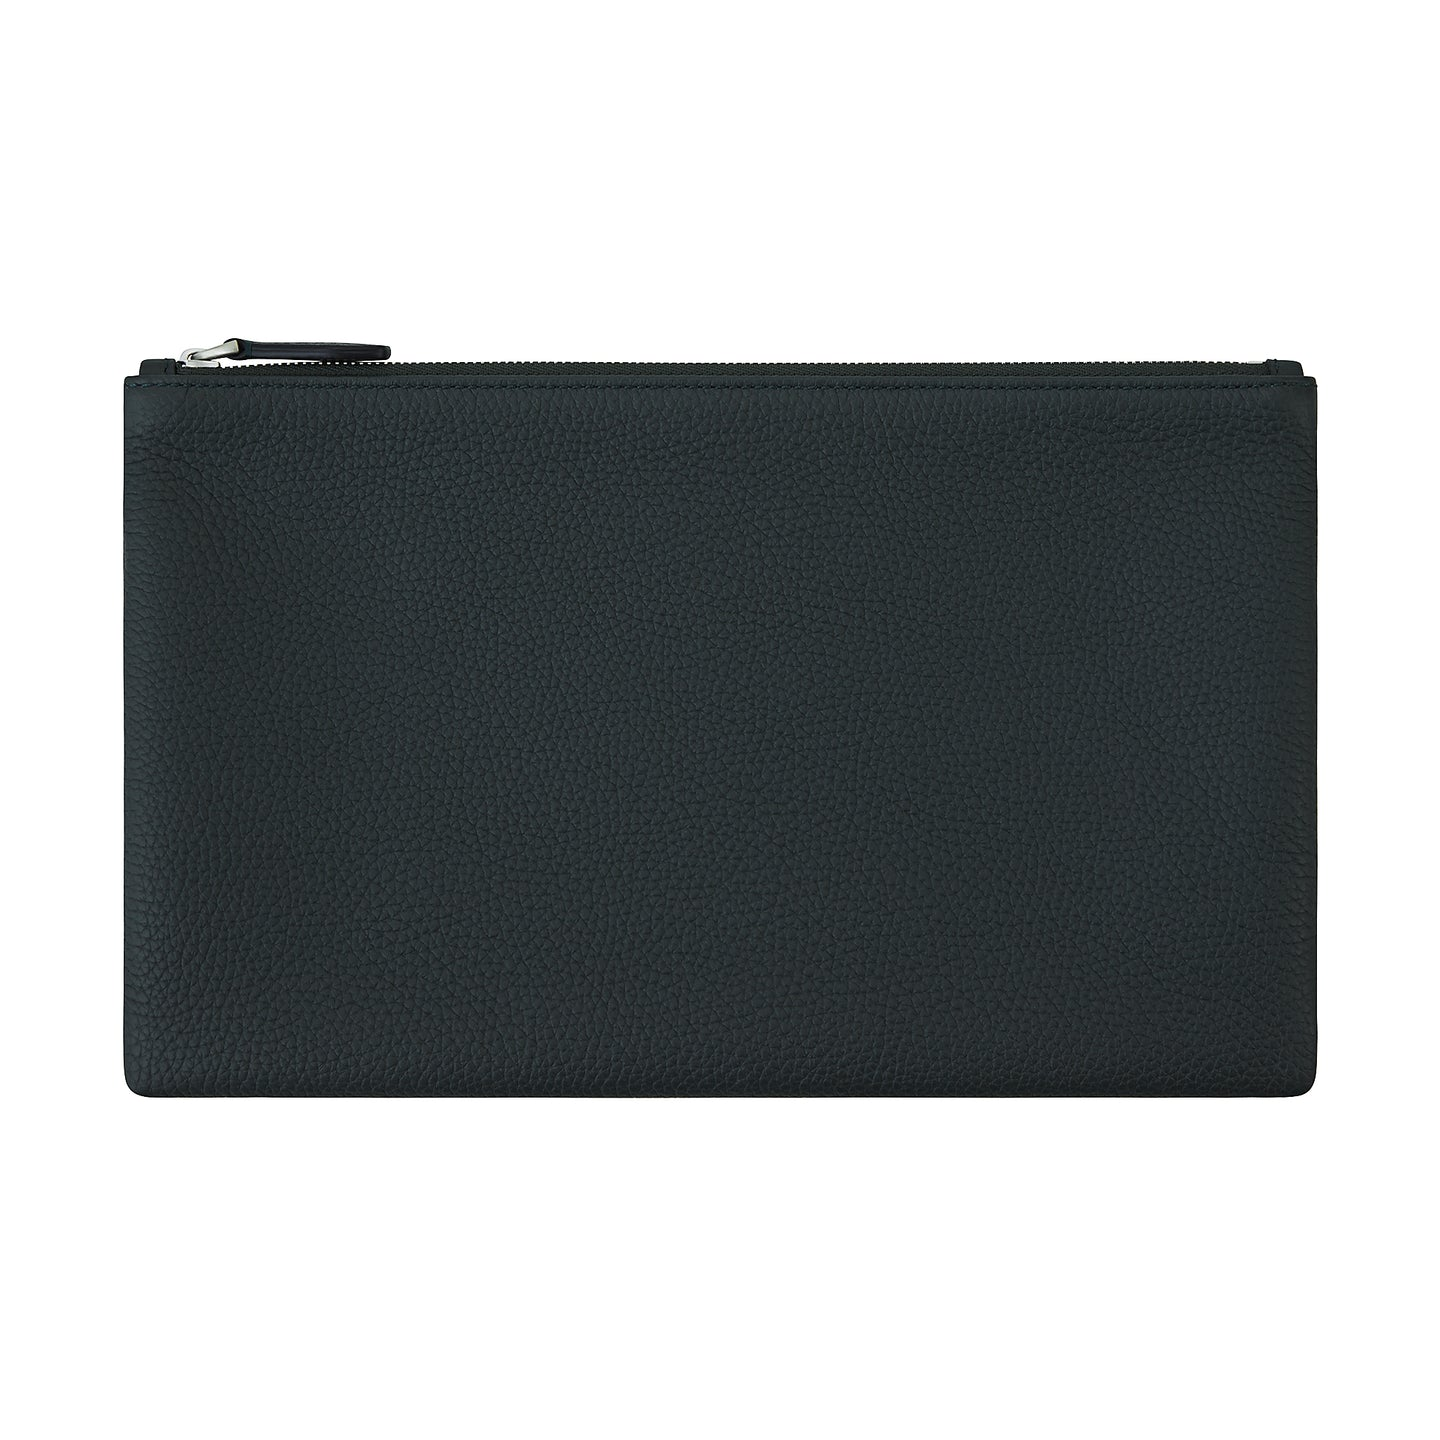 Tony 29 Clutch Dark Green